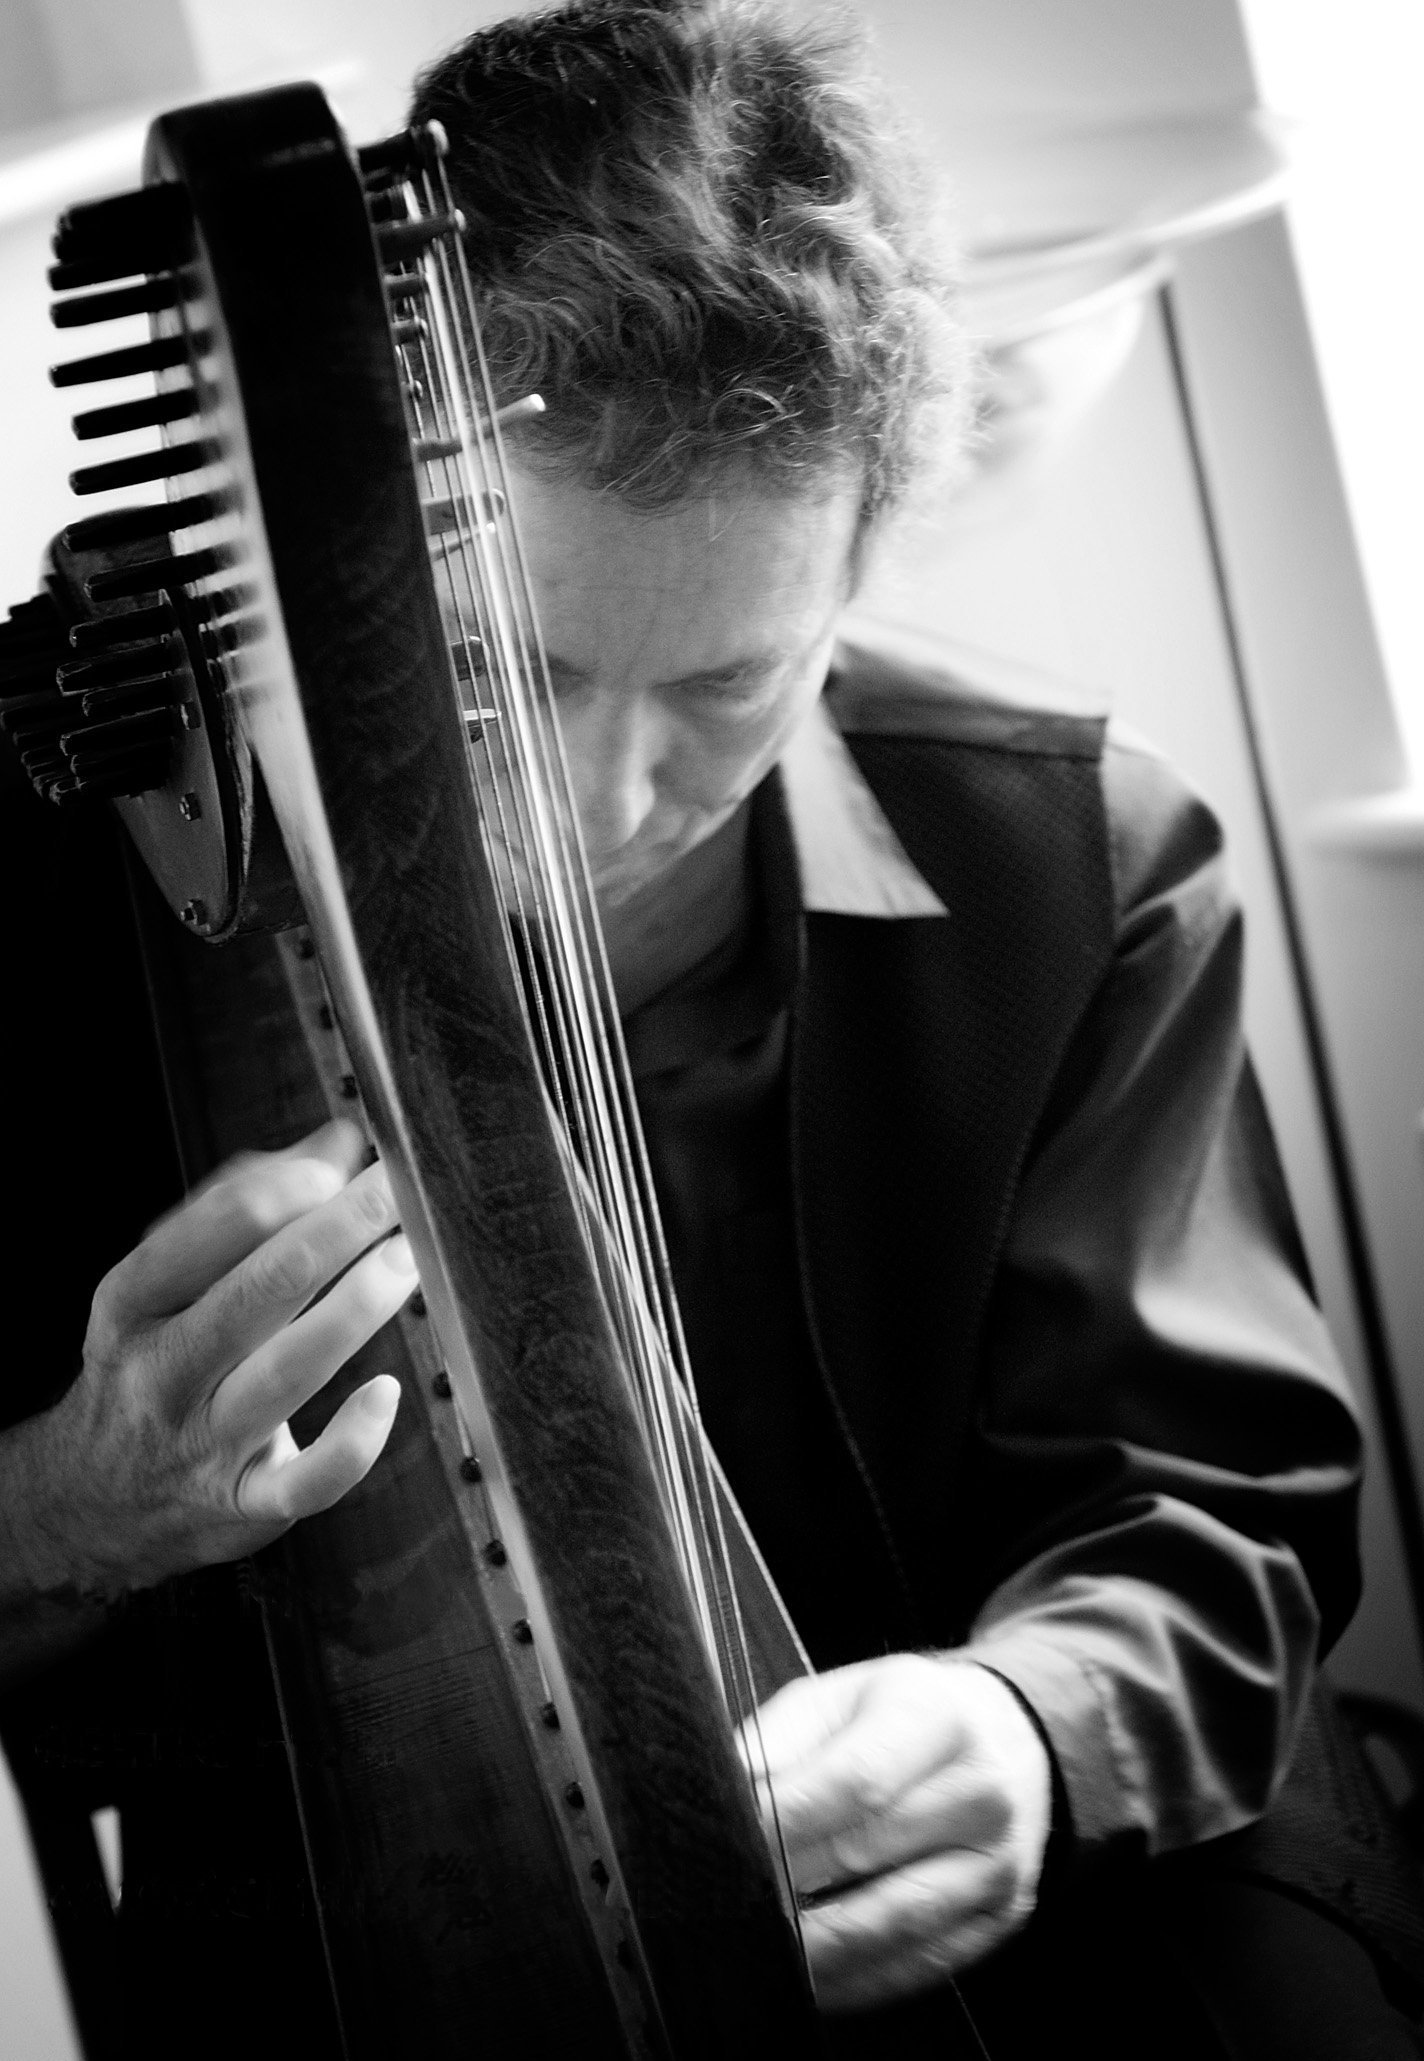 Celtic harpist Chris Knowles is joined by fiddler Mike Lease and singer Catrin O'Neill - Enjoy an evening of Celtic music in the Harlech memorial hall. Starting at 7pm on Friday 7th June